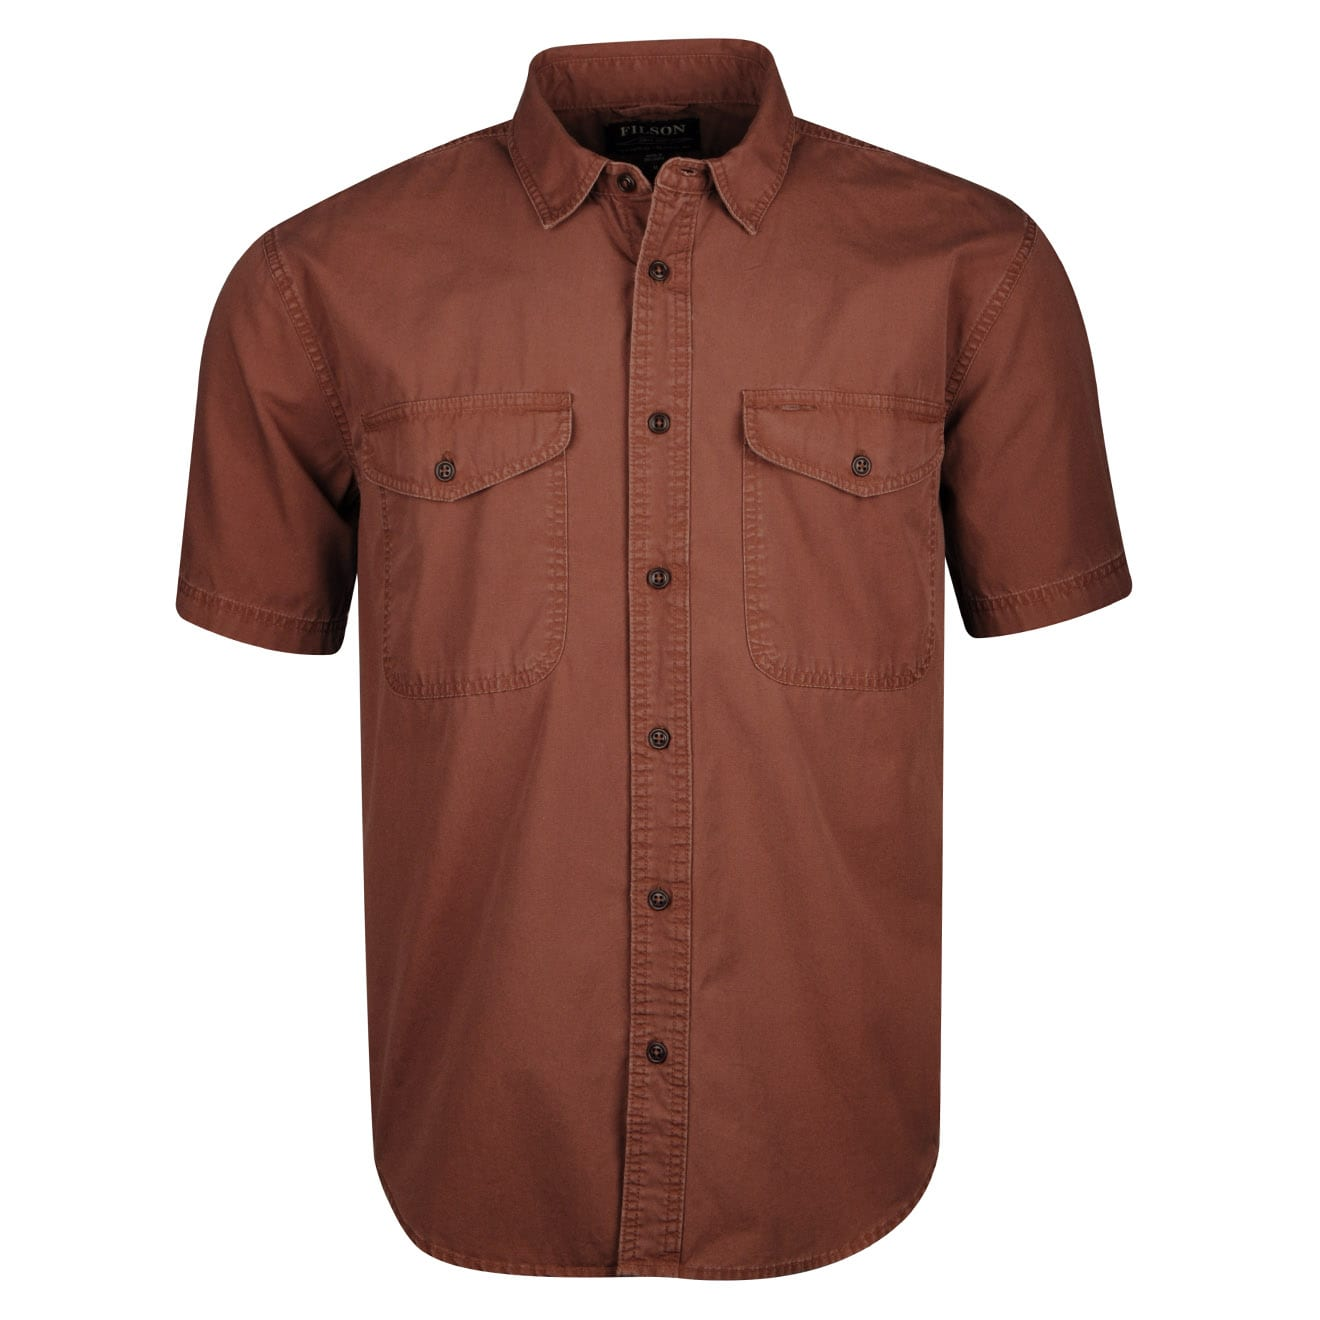 81a2ff8a025 Men s Country Shirts - The Sporting Lodge